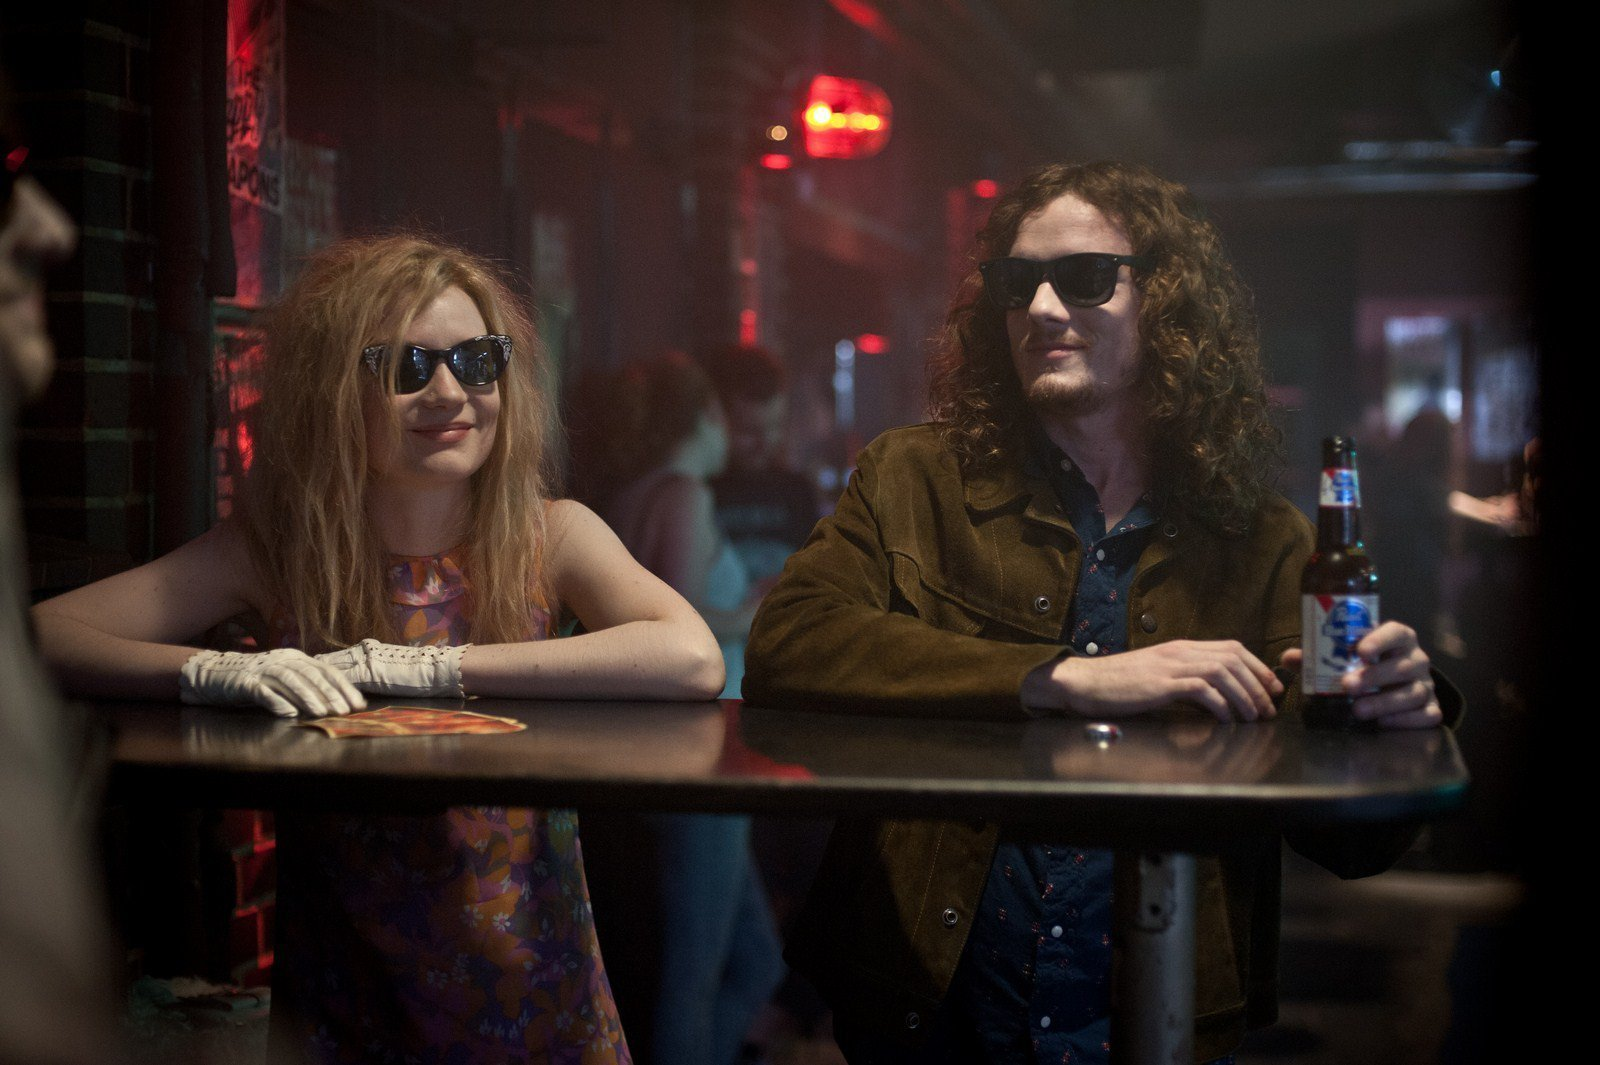 Photo du film Only Lovers Left Alive avec Mia Wasikowska et Anton Yelchin